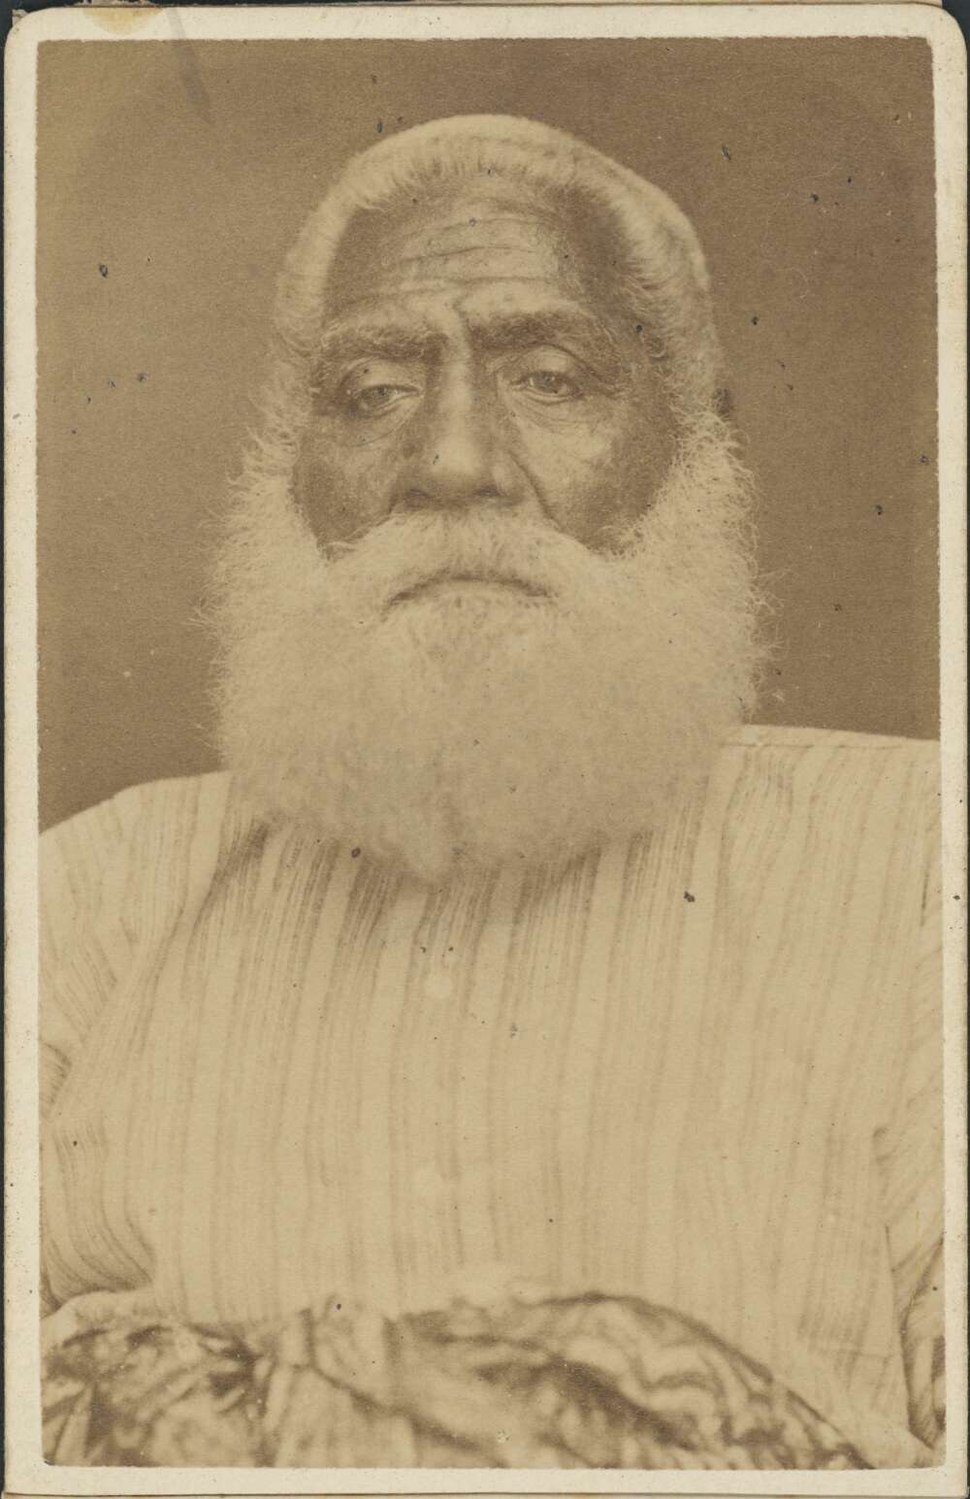 Cakobau, died February 1883, photograph by Francis H. Dufty